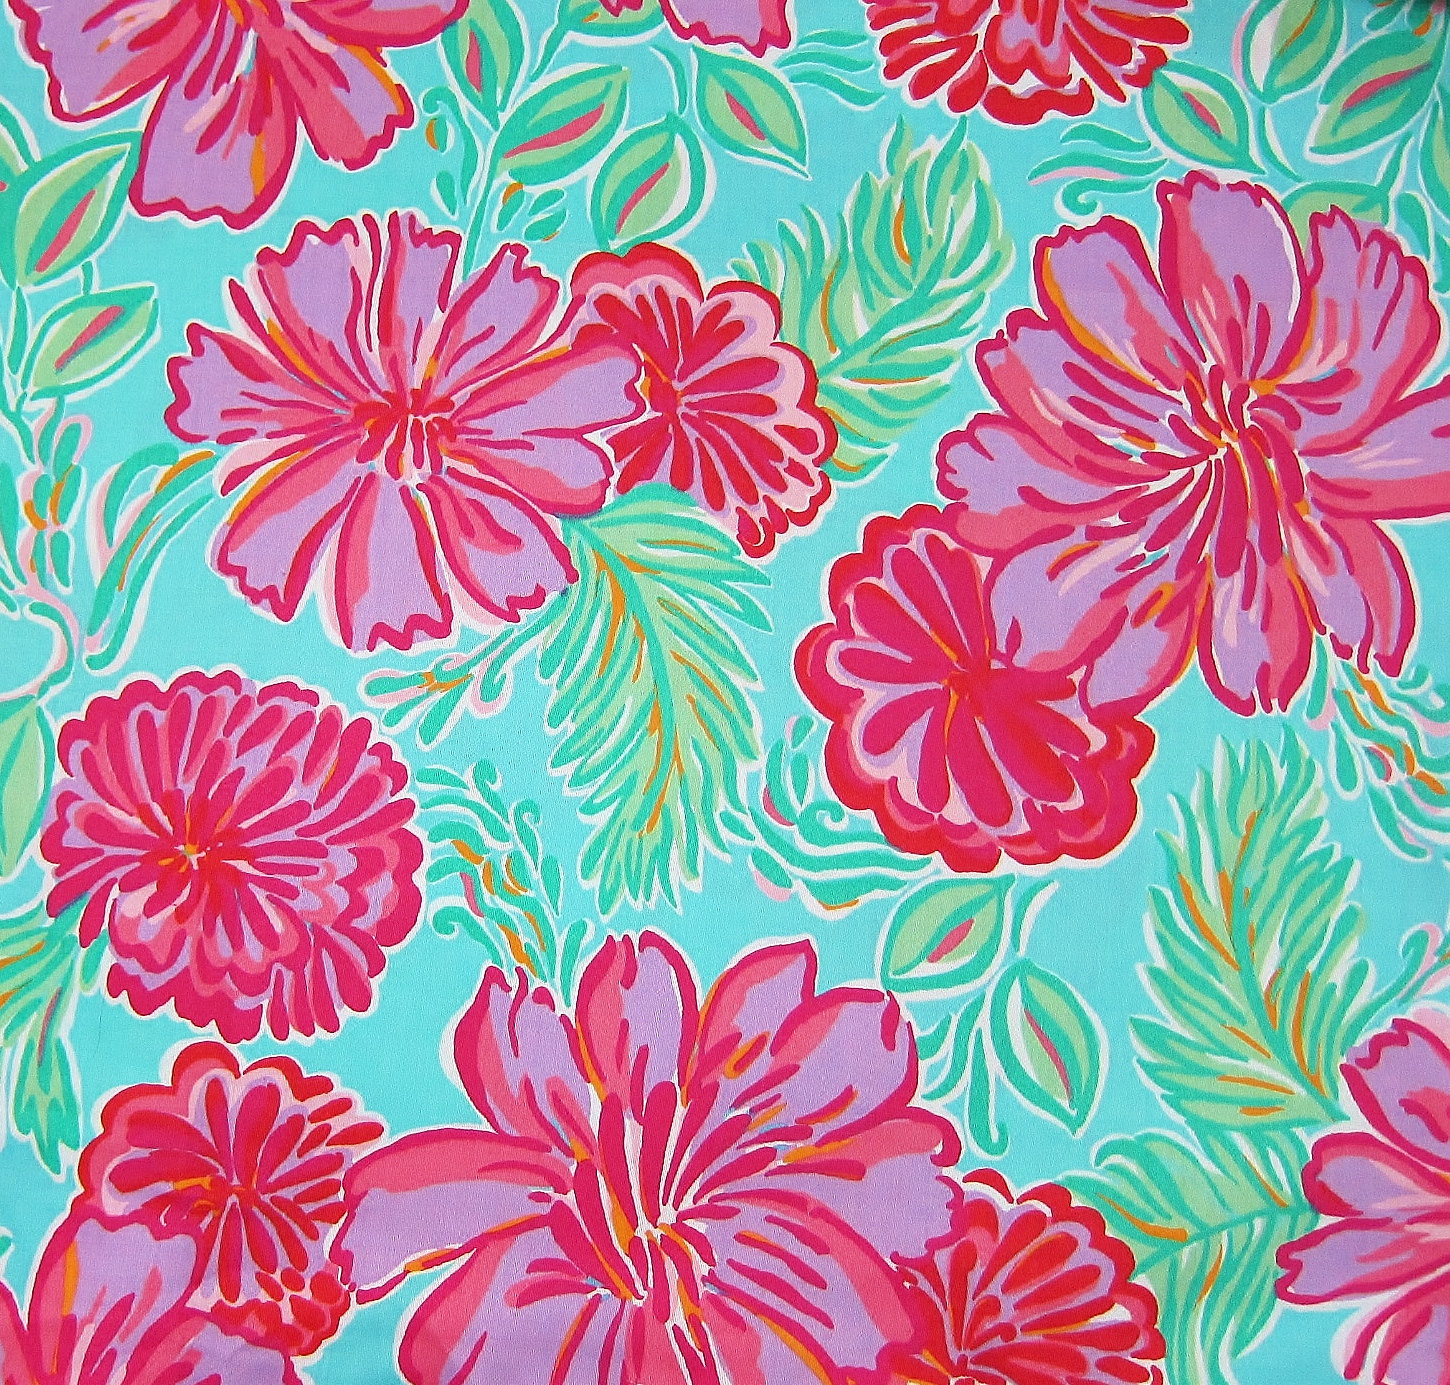 61850f818bc5e0 Authentic New Lilly Pulitzer Fabric 2011 Resort by lillyfabricland 1450x1385